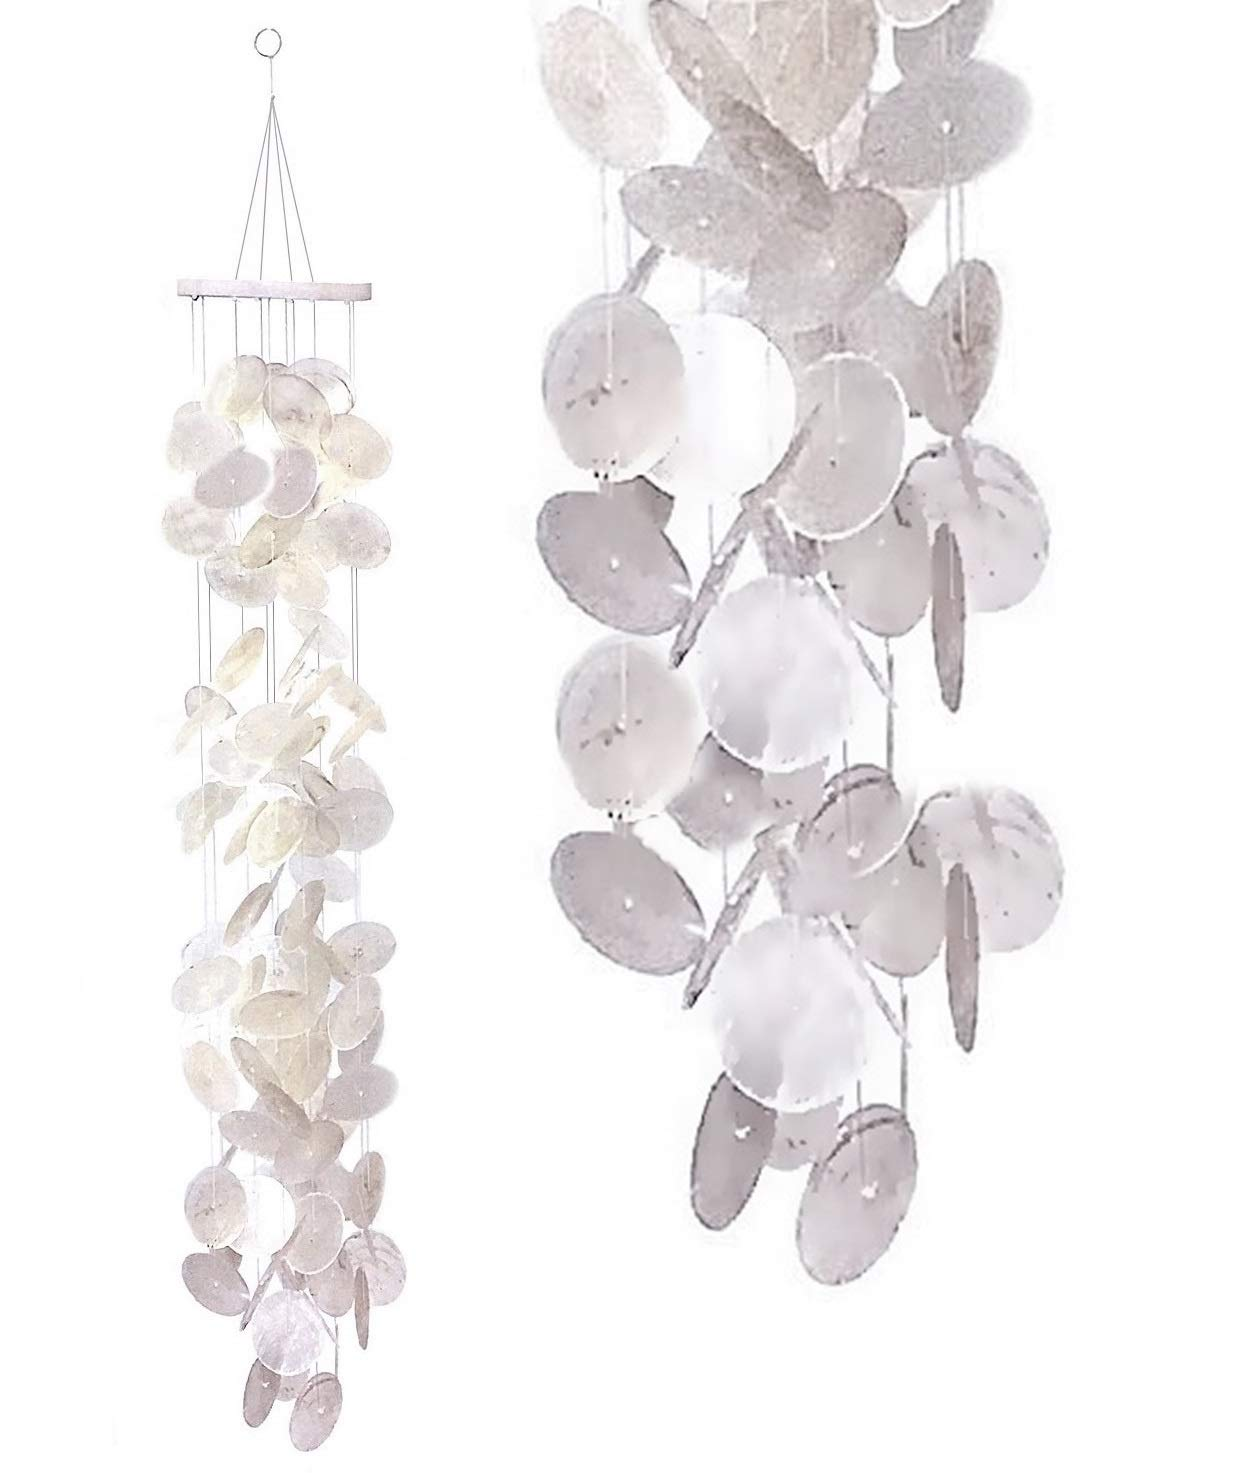 Bellaa 279256 Outdoor Patio Garden Wind Chimes Gifts for Mom Best Friends Grandma Teacher Mother in Law Soothing Tone 40 inch